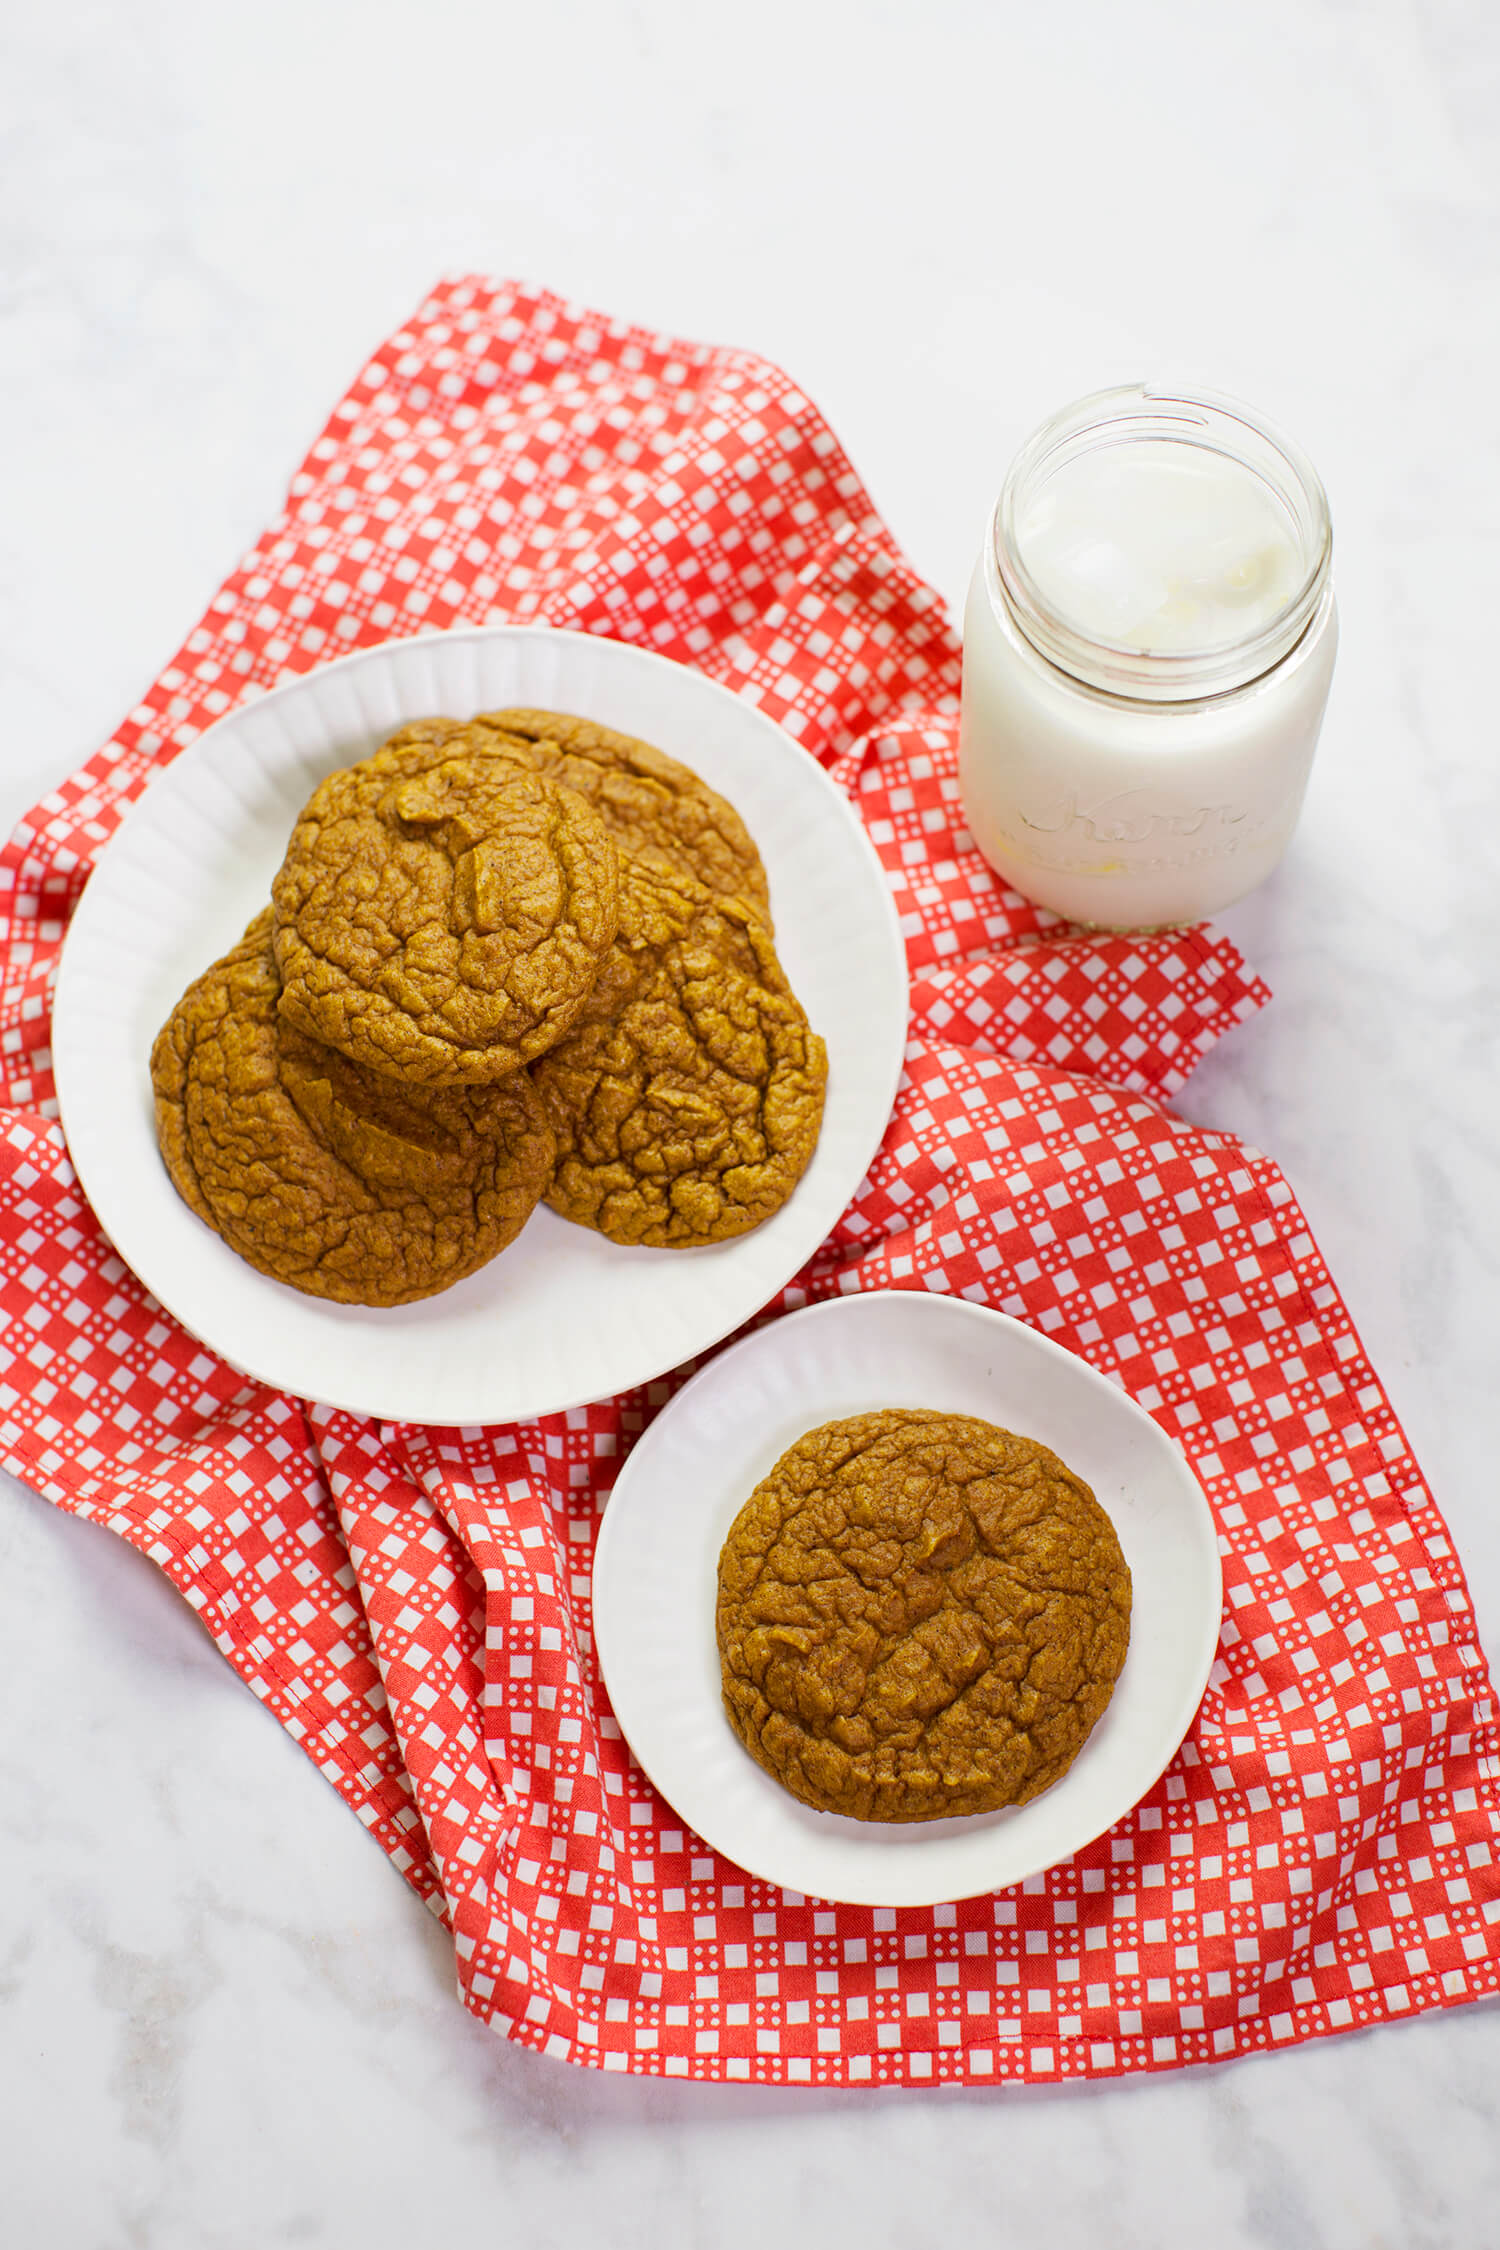 Grain-free Pumpkin Blender Cookies (via abeautifulmess.com)